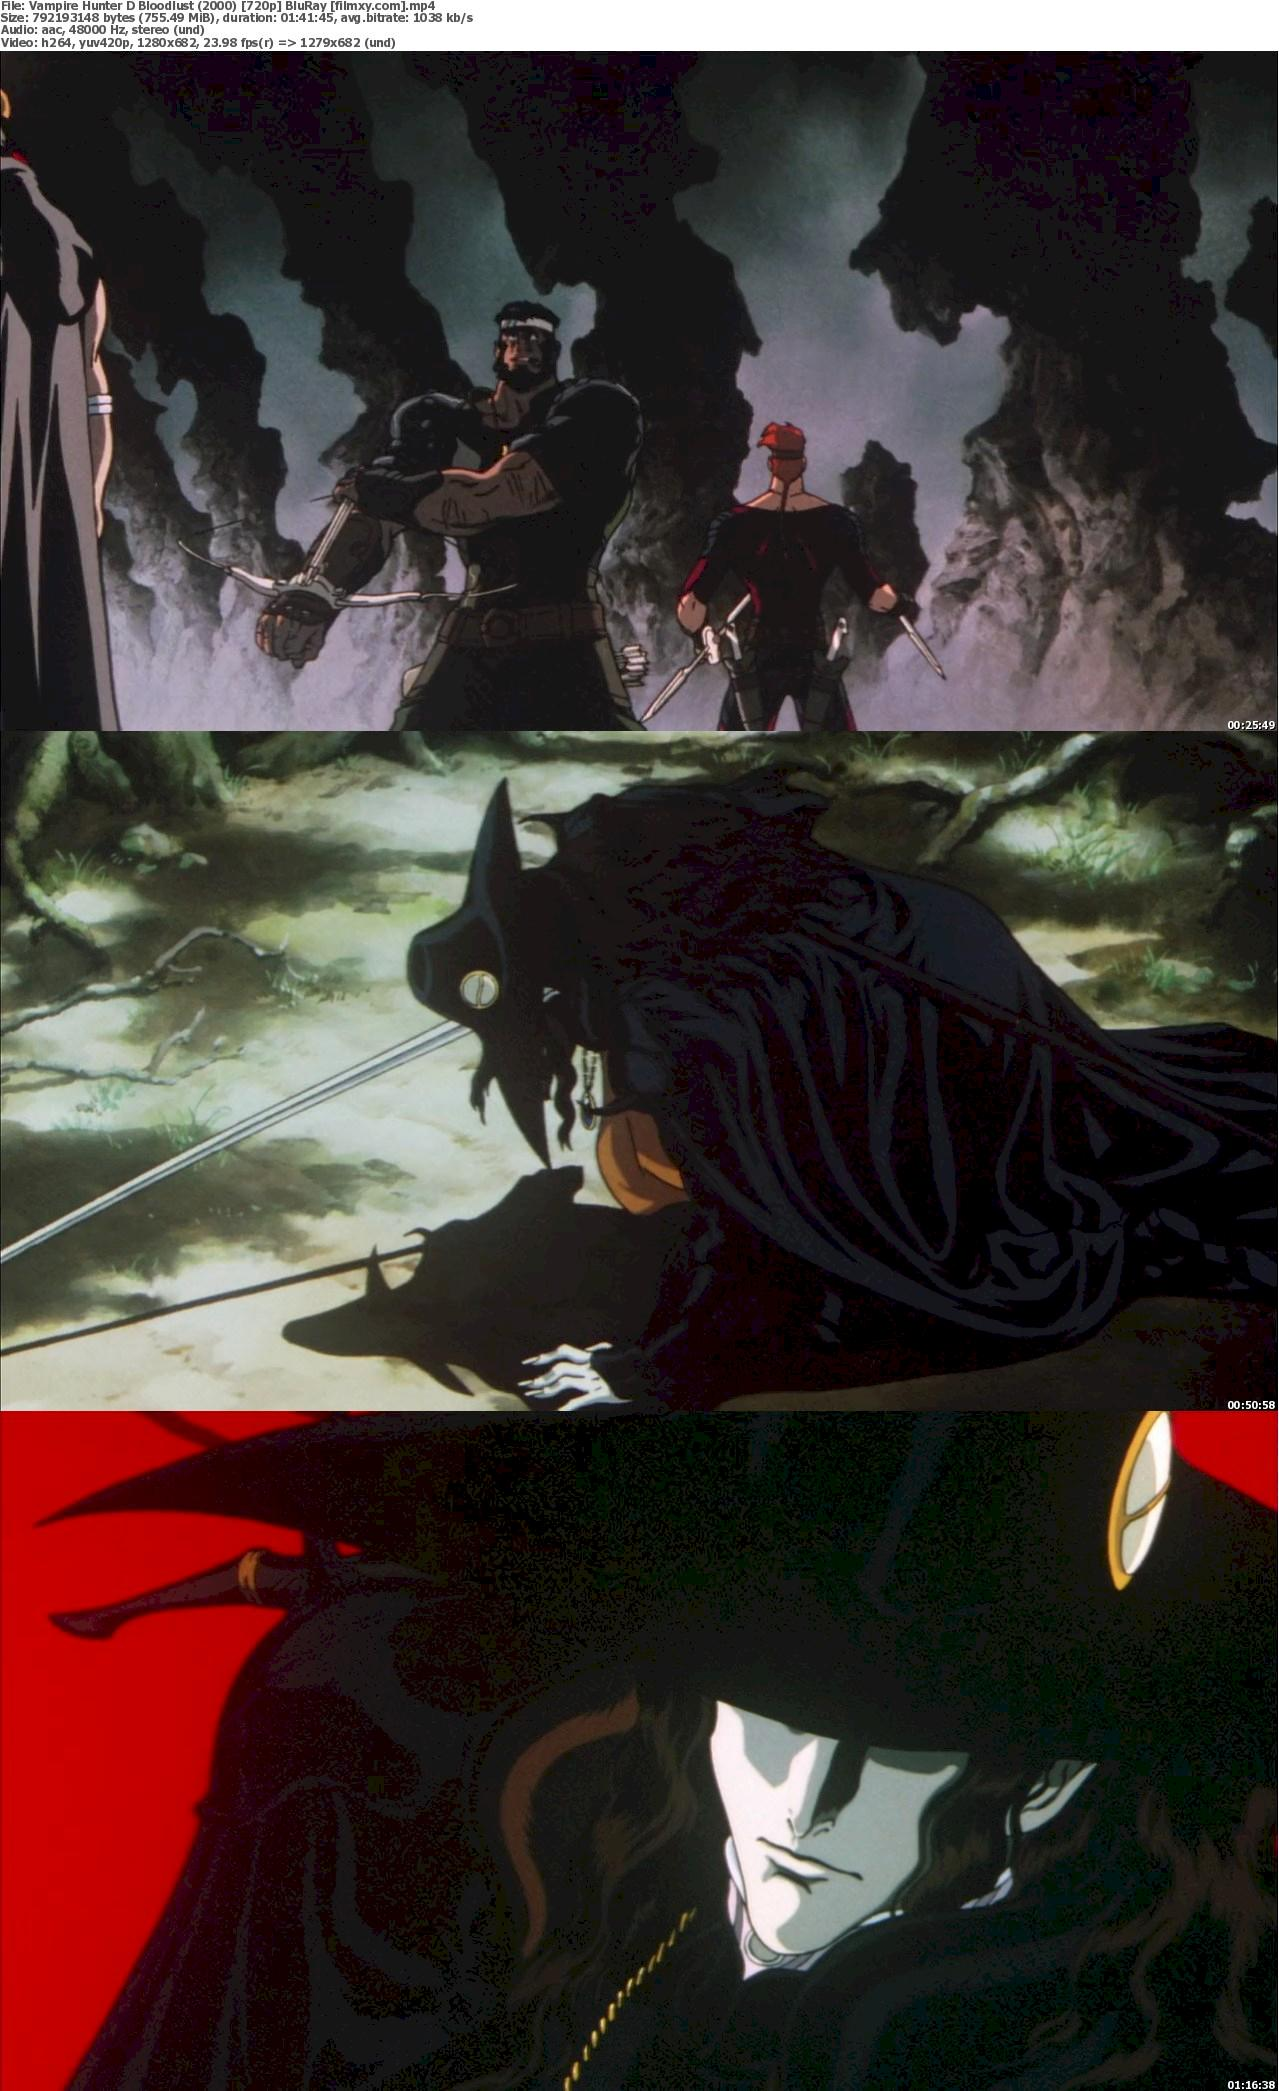 Vampire Hunter D Bloodlust (2000) 720p & 1080p Bluray Free Download 720p Screenshot